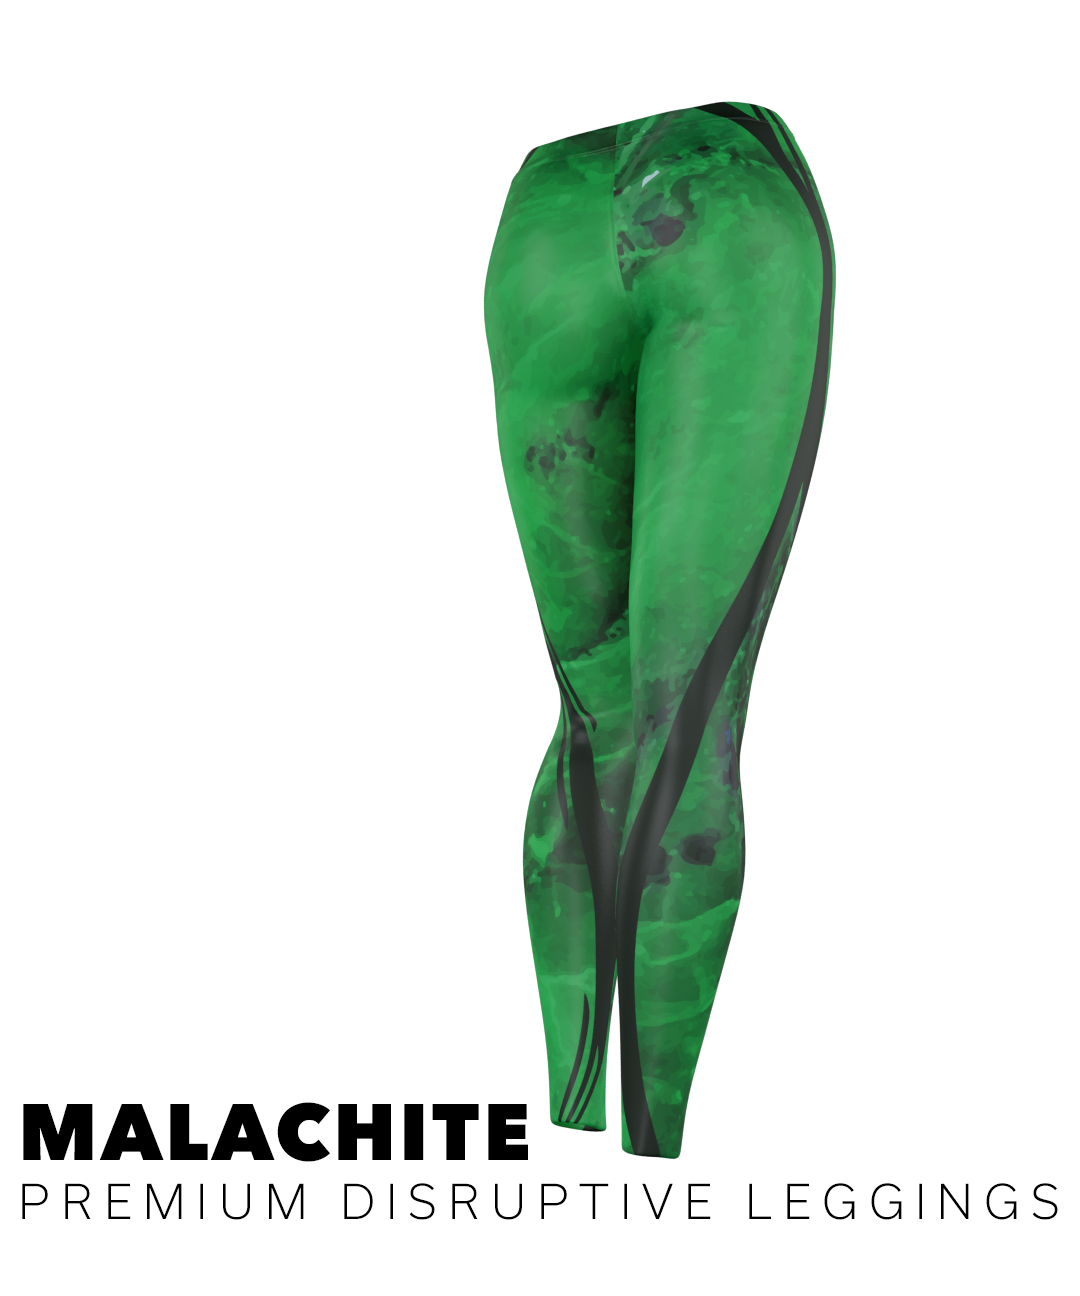 #MALACHITE PREMIUM DISRUPTIVE LEGGINGS